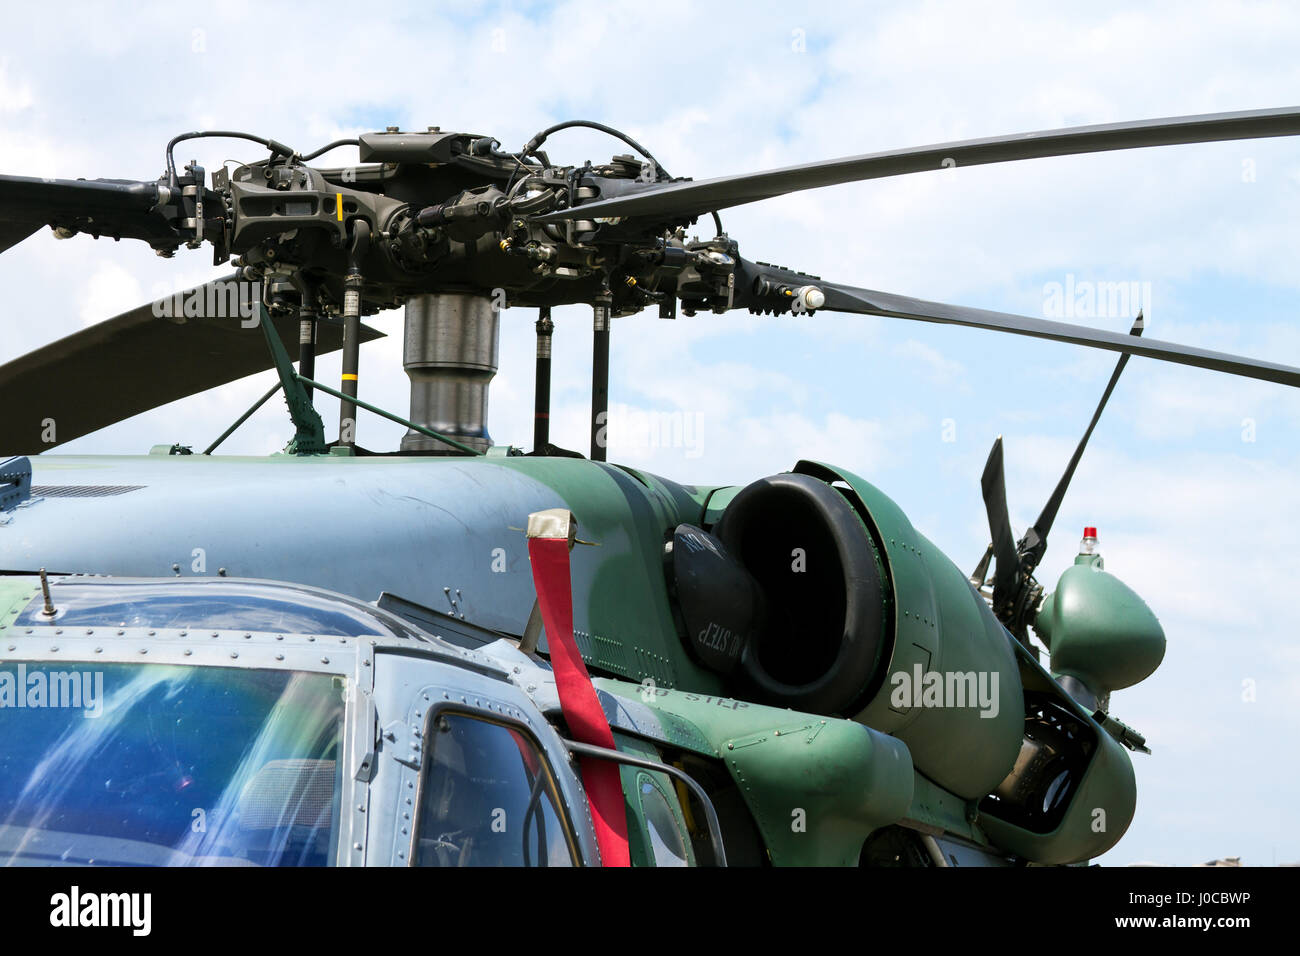 Military Helicopter rotor close-Up - Stock Image